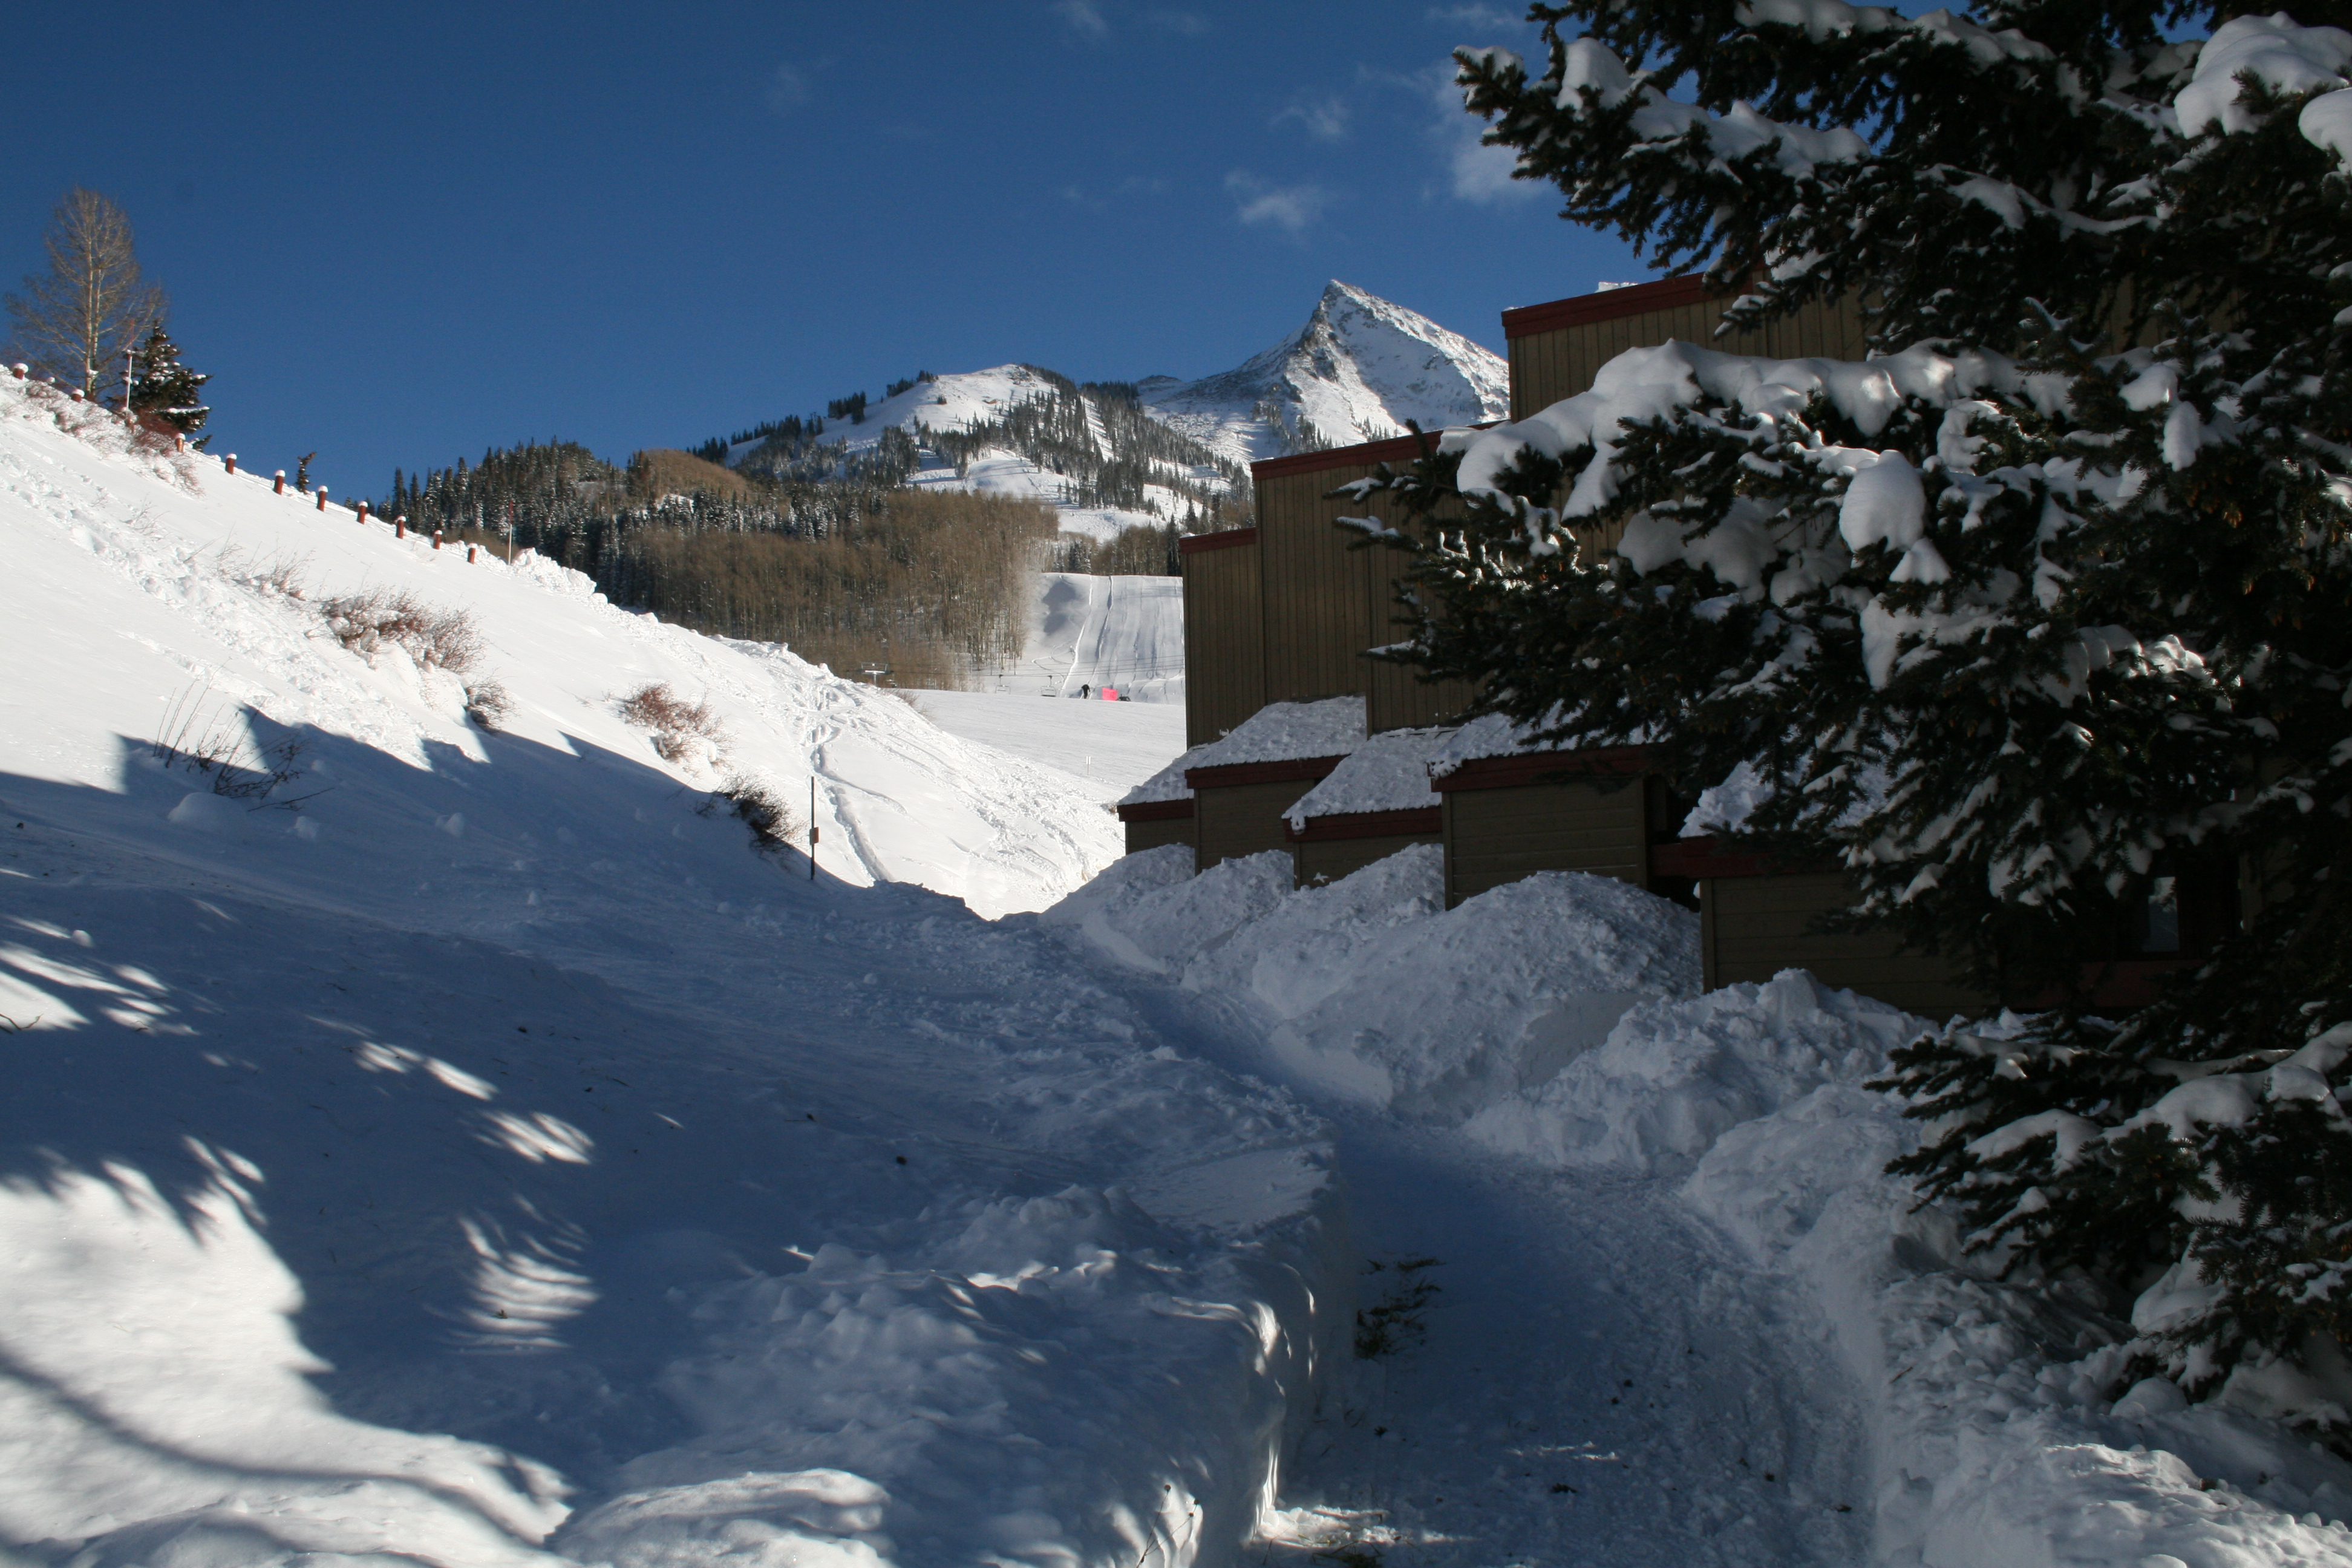 Buttes Condominiums, 21 Crested Mountain Lane, Mt. Crested Butte, CO 81225(1)